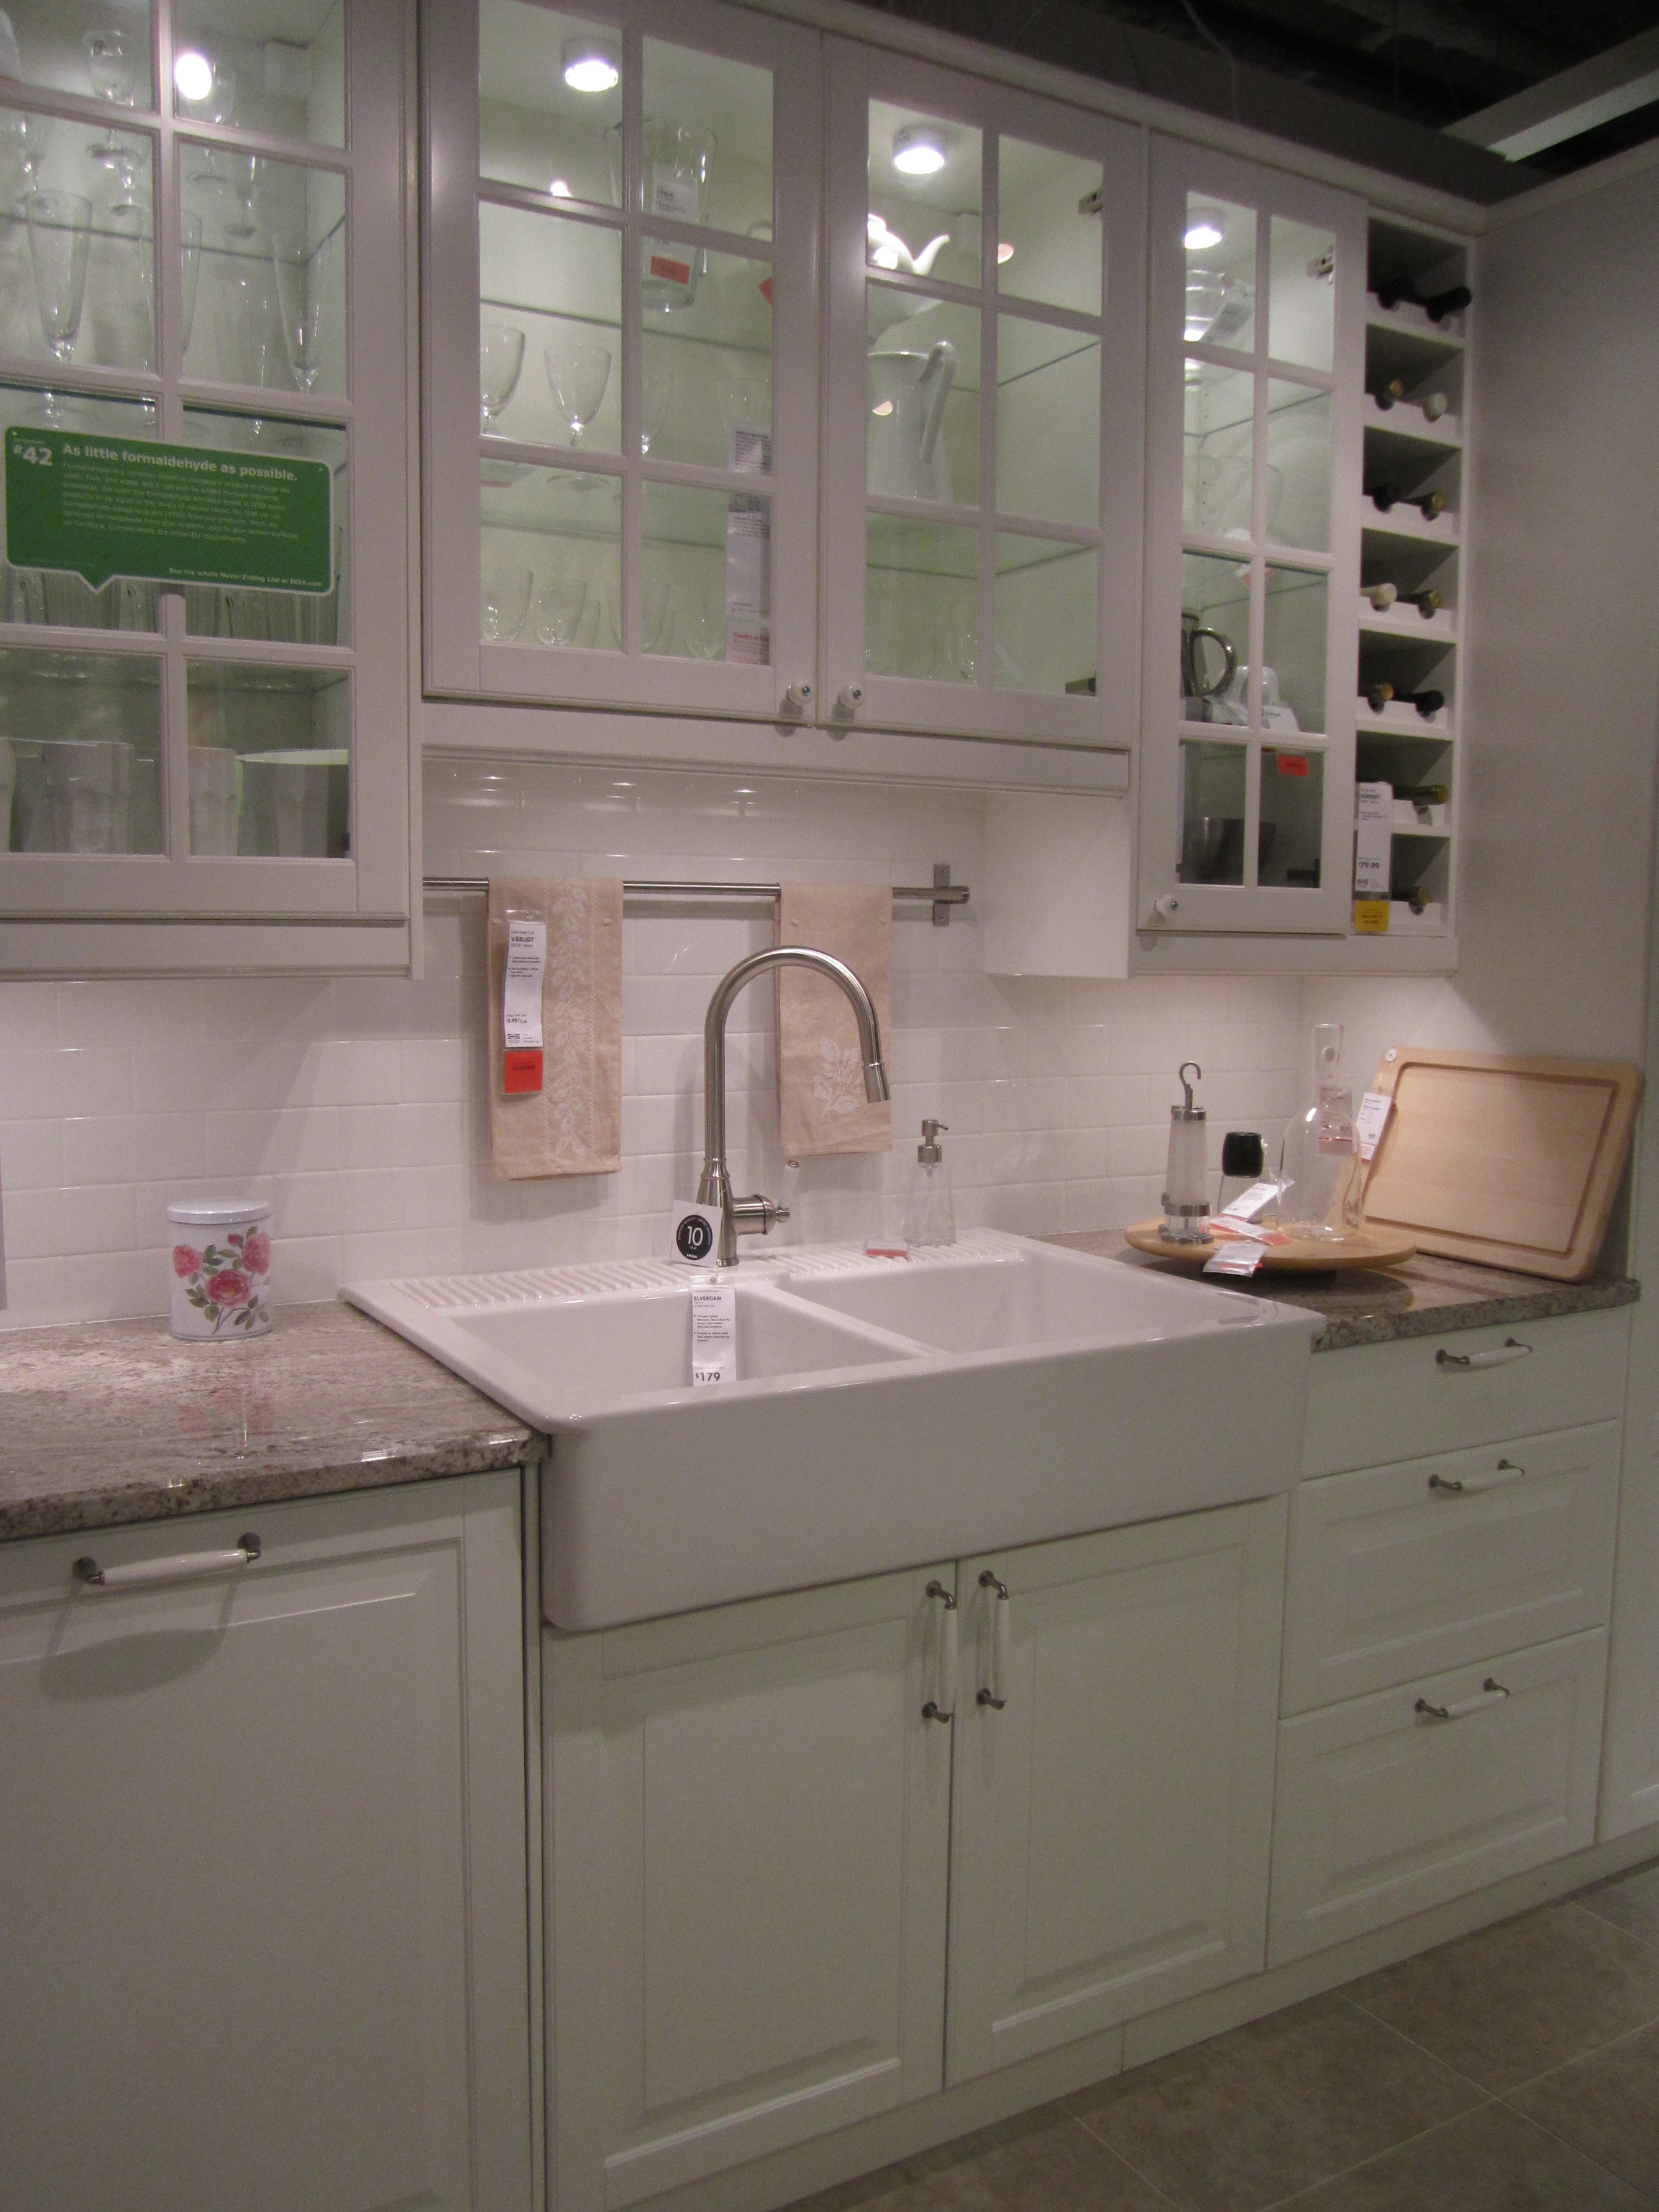 Apron Sink Ikea : You can also see that Ikea has jumped on the apron sink bandwagon. I ...